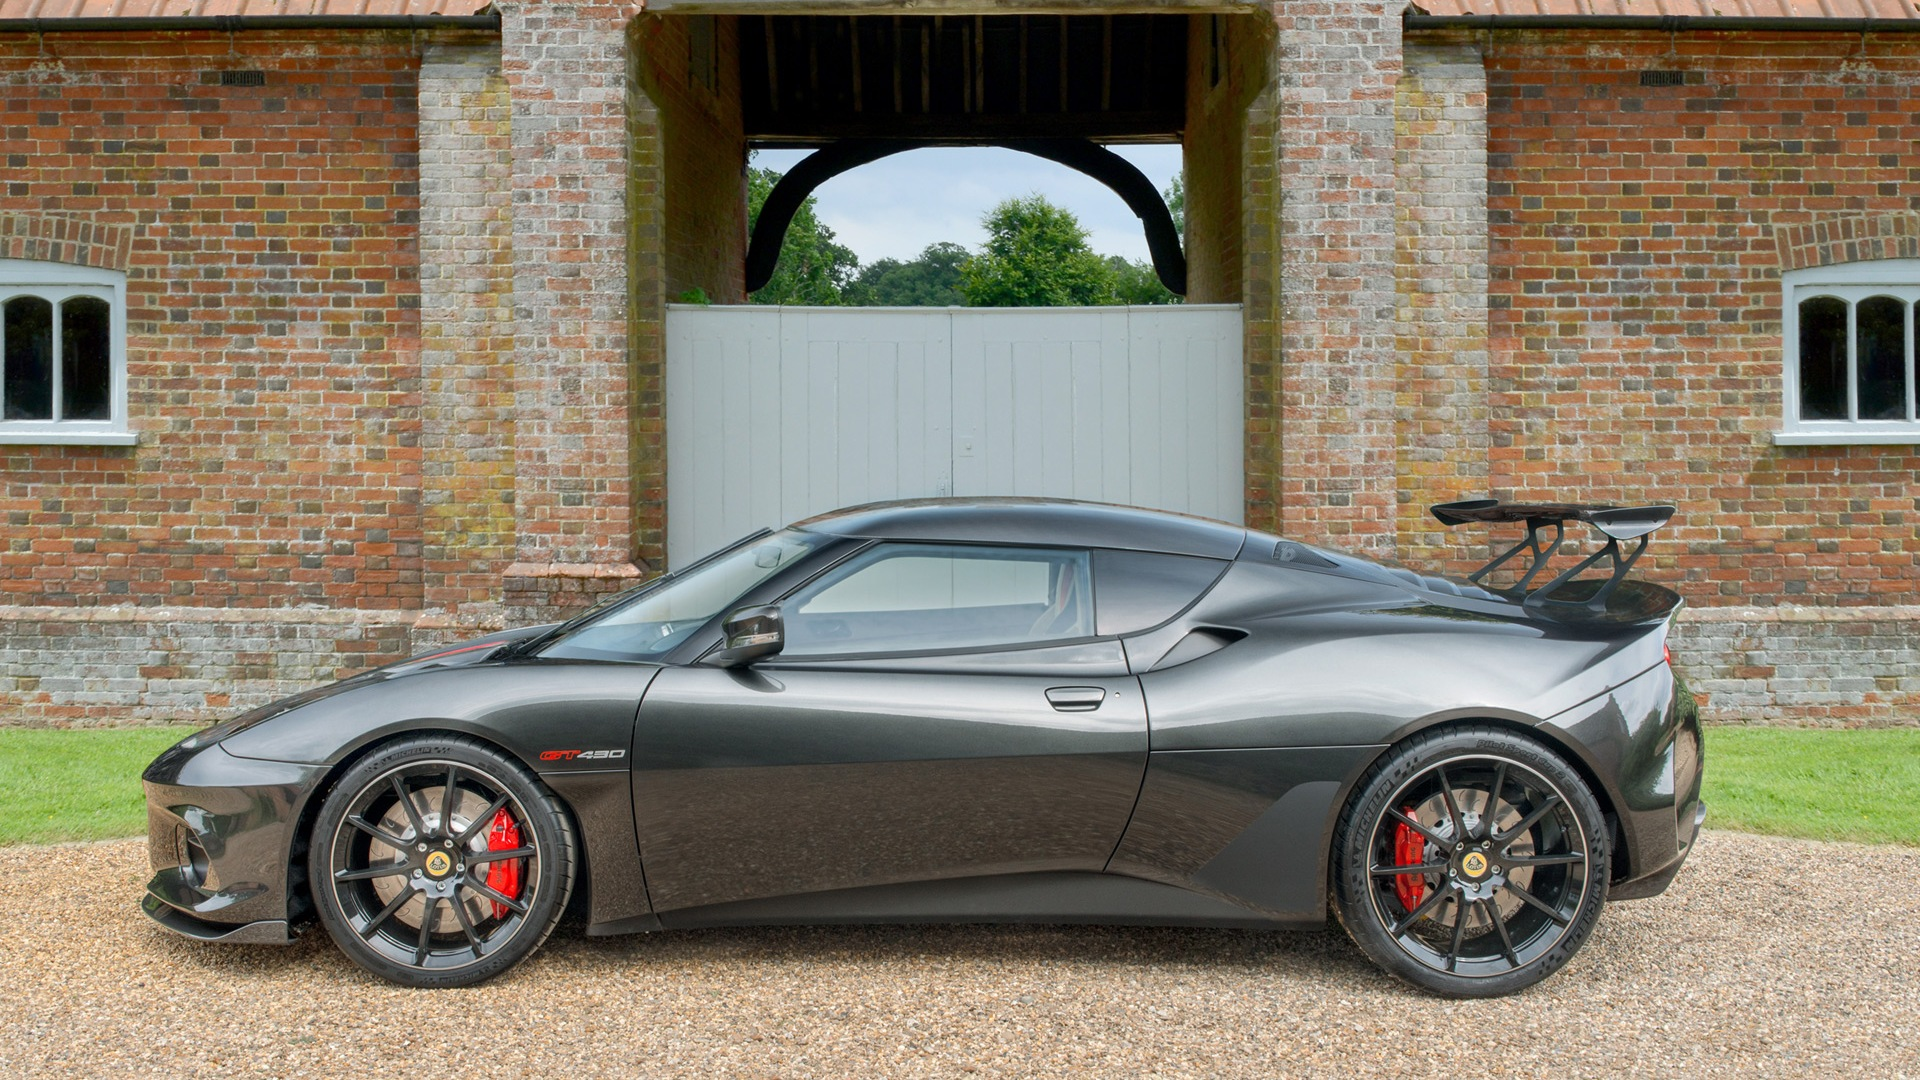 26 All New 2020 The Lotus Evora Exterior and Interior